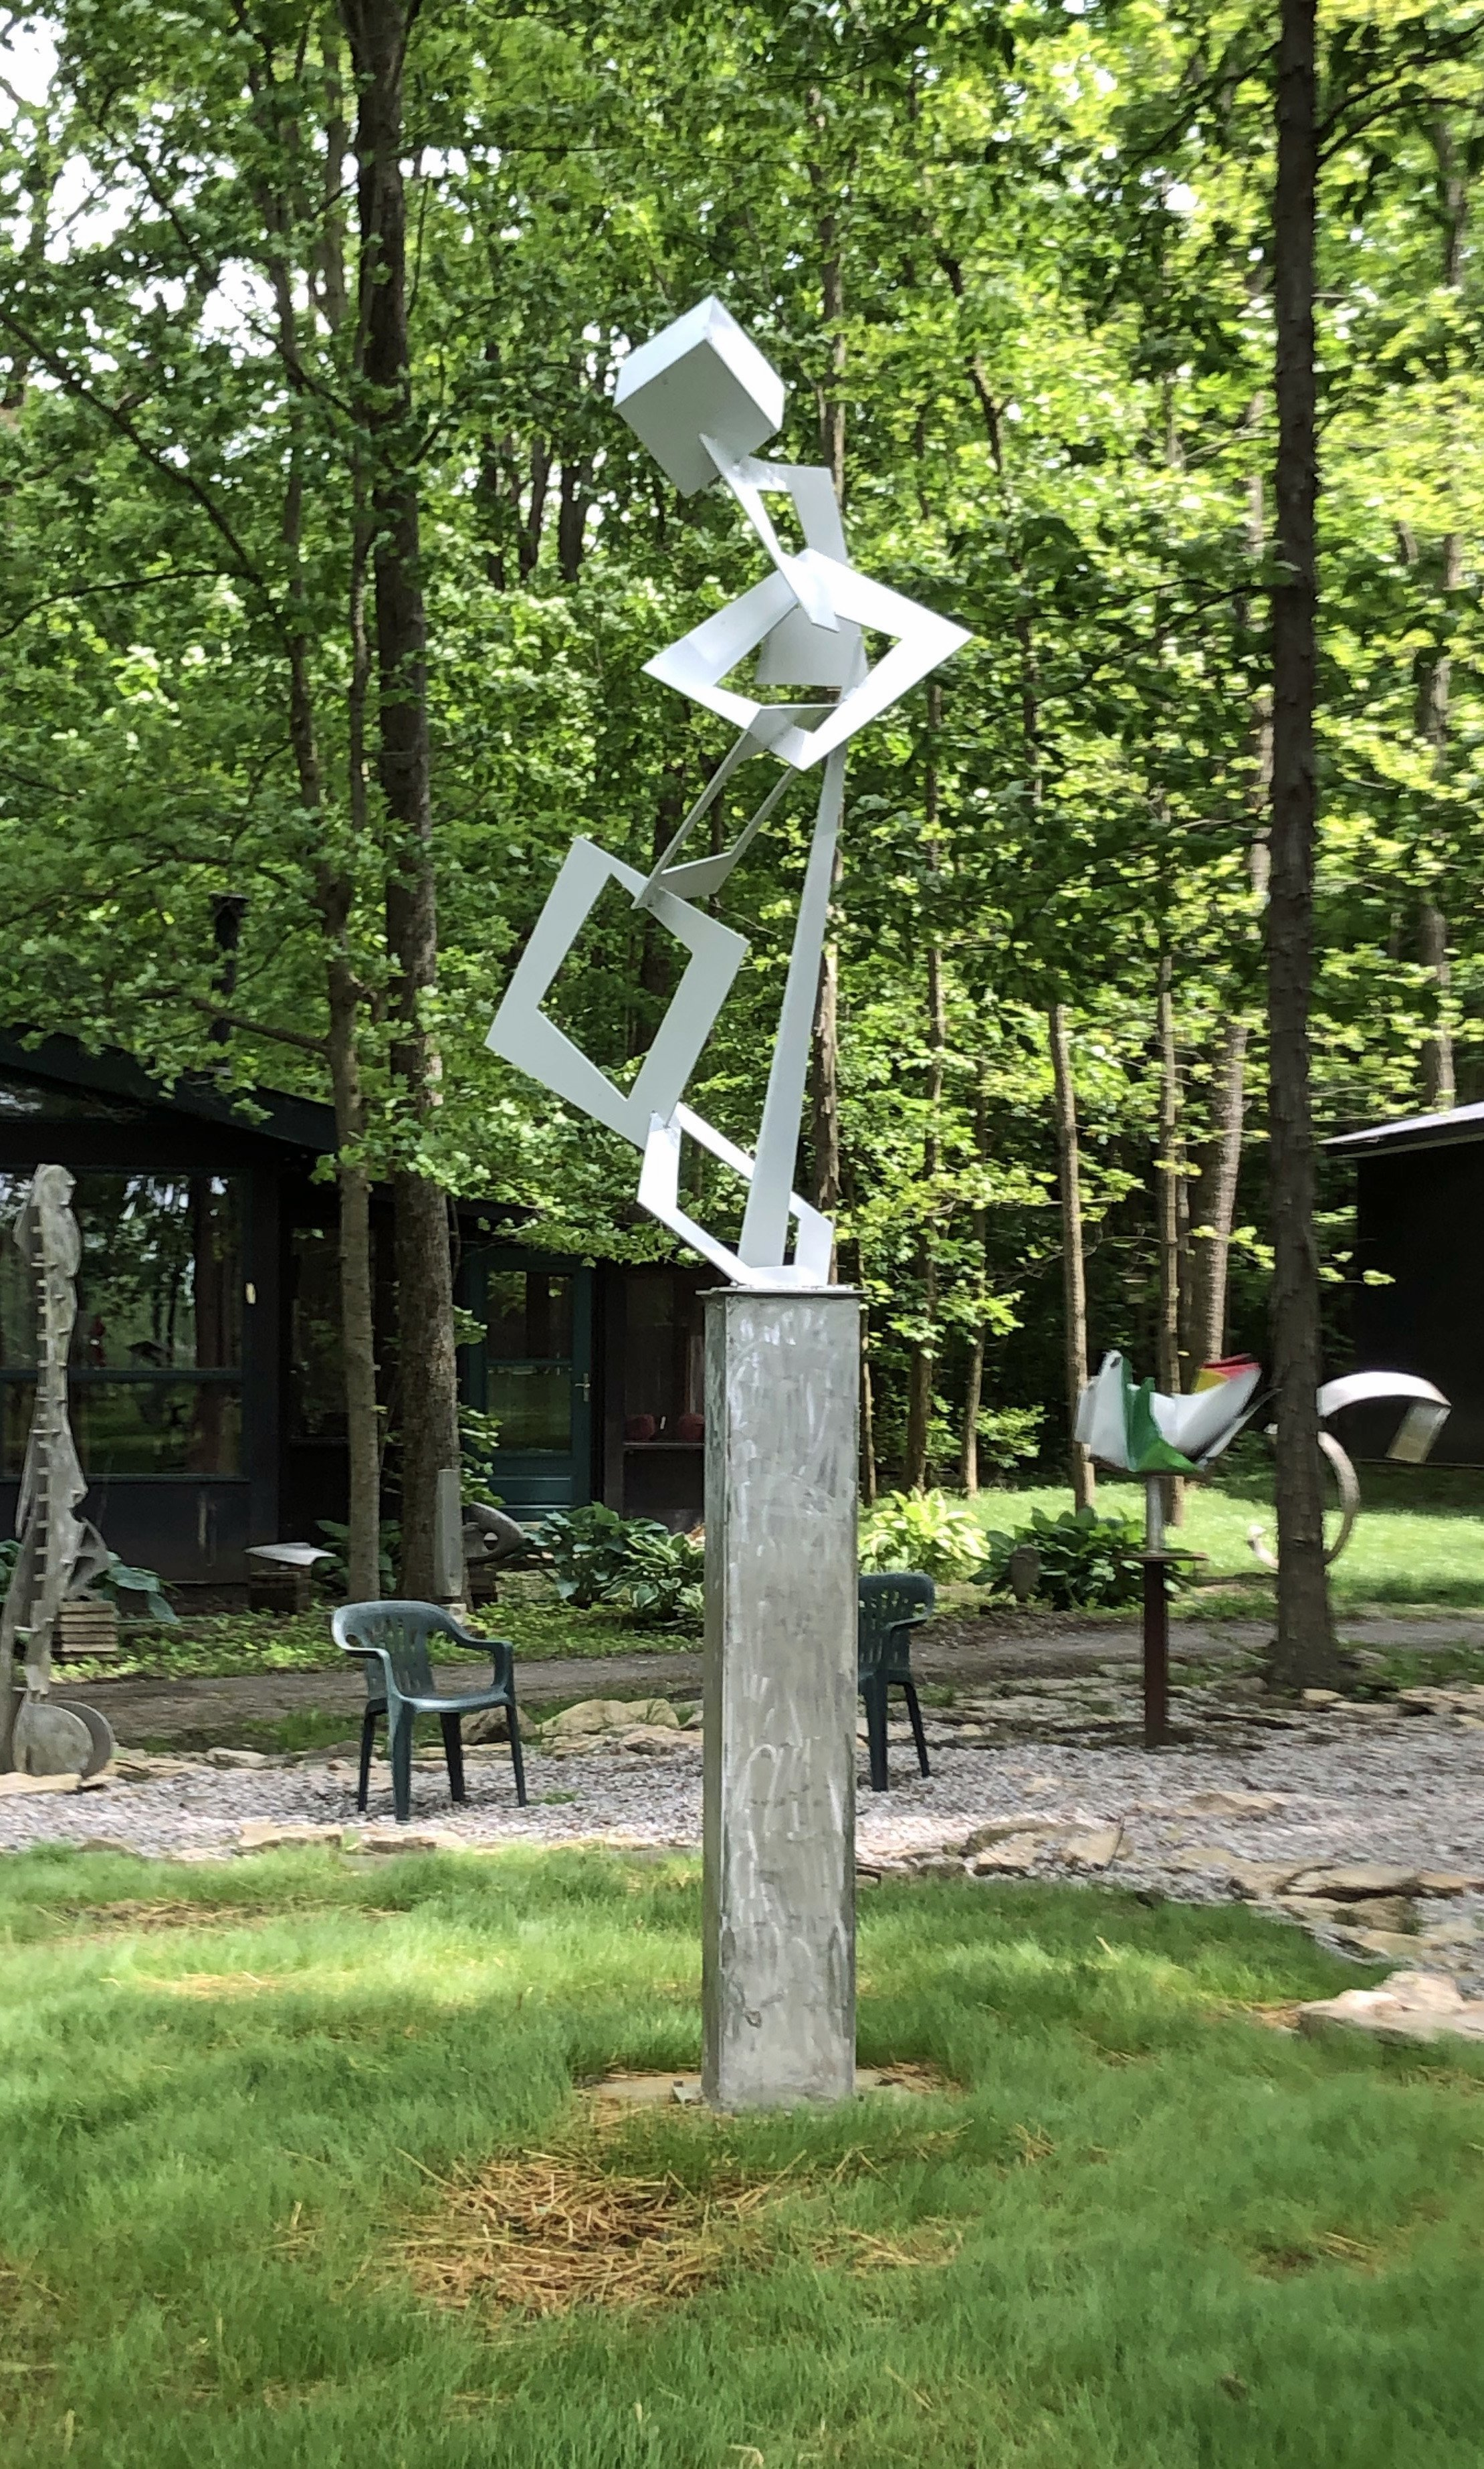 Mac Worthington: 'flight of angels', 2020 Aluminum Sculpture, Abstract. Welded aluminum painted pearl white. Abstract outdoor sculpture...